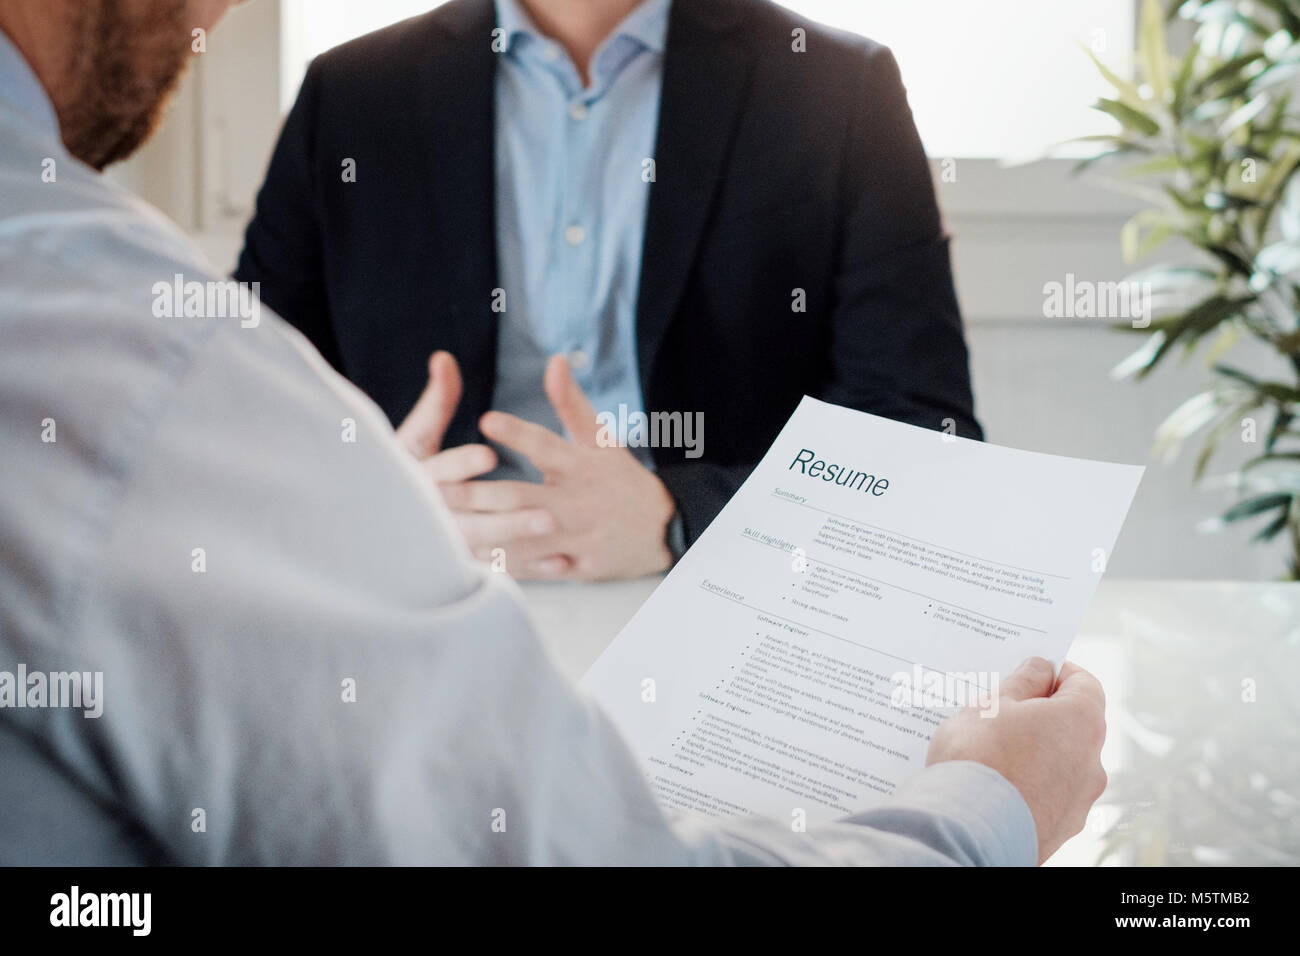 Recruiter reading curriculum of a candidate for a job - Stock Image